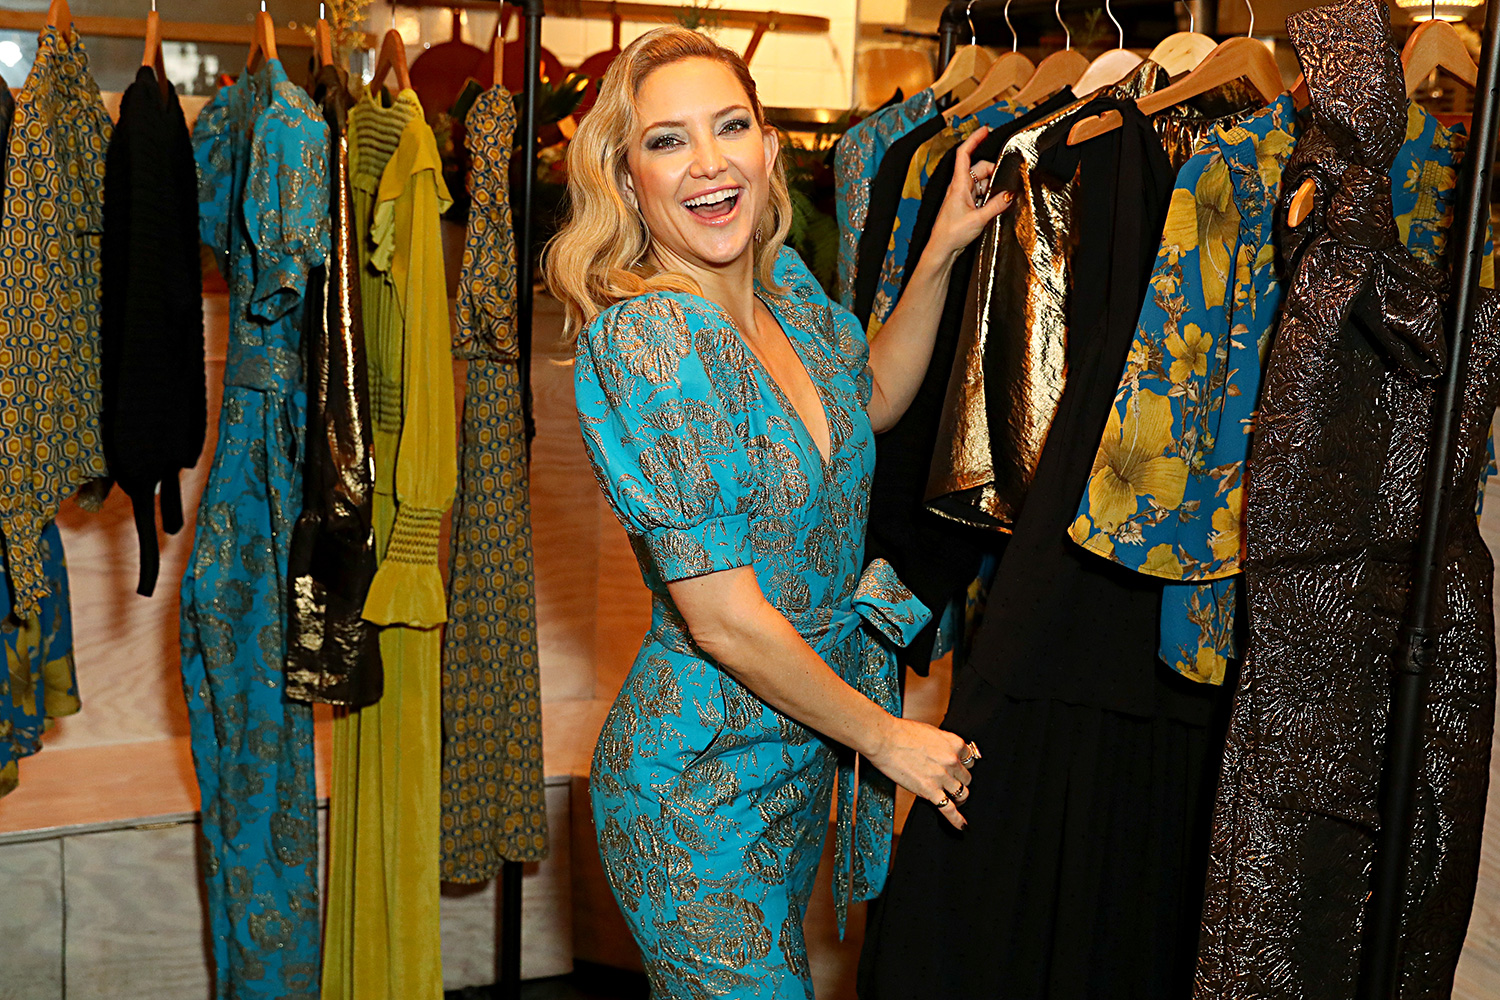 Kate Hudson hosts a cocktail event to celebrate Happy X Nature Eco-Evening Collection at The Butchers Daughter on December 12, 2019 in Venice, California